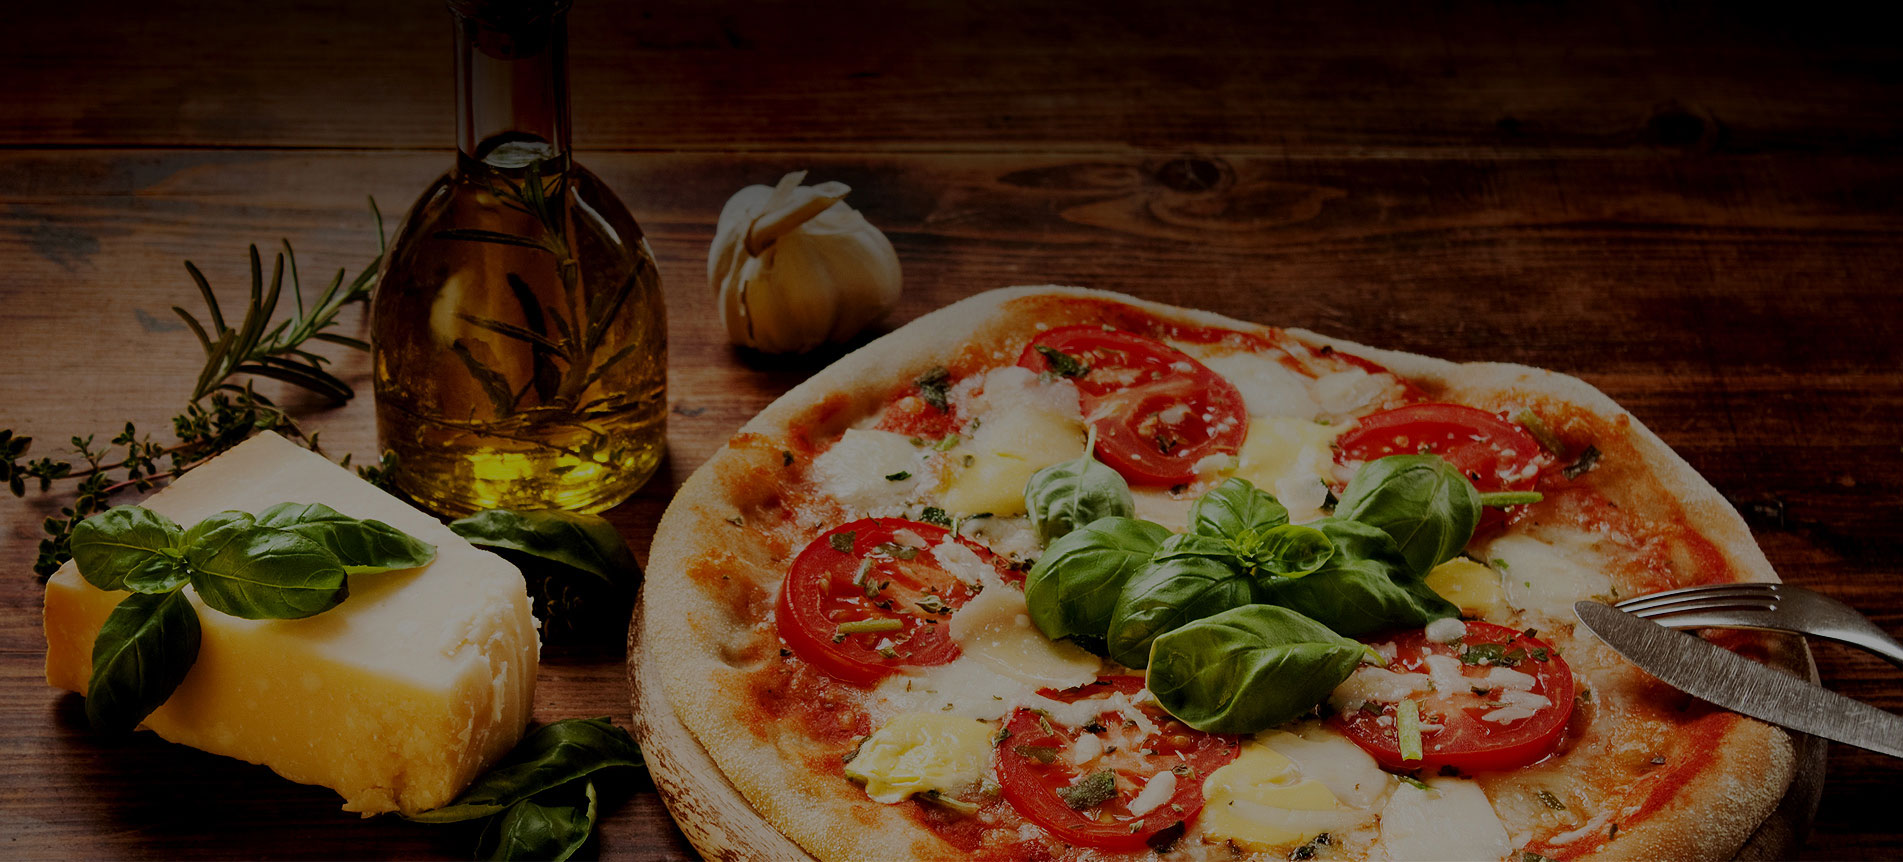 Home Ciao Ciao Ibiza Delivery Pizza Italian Food